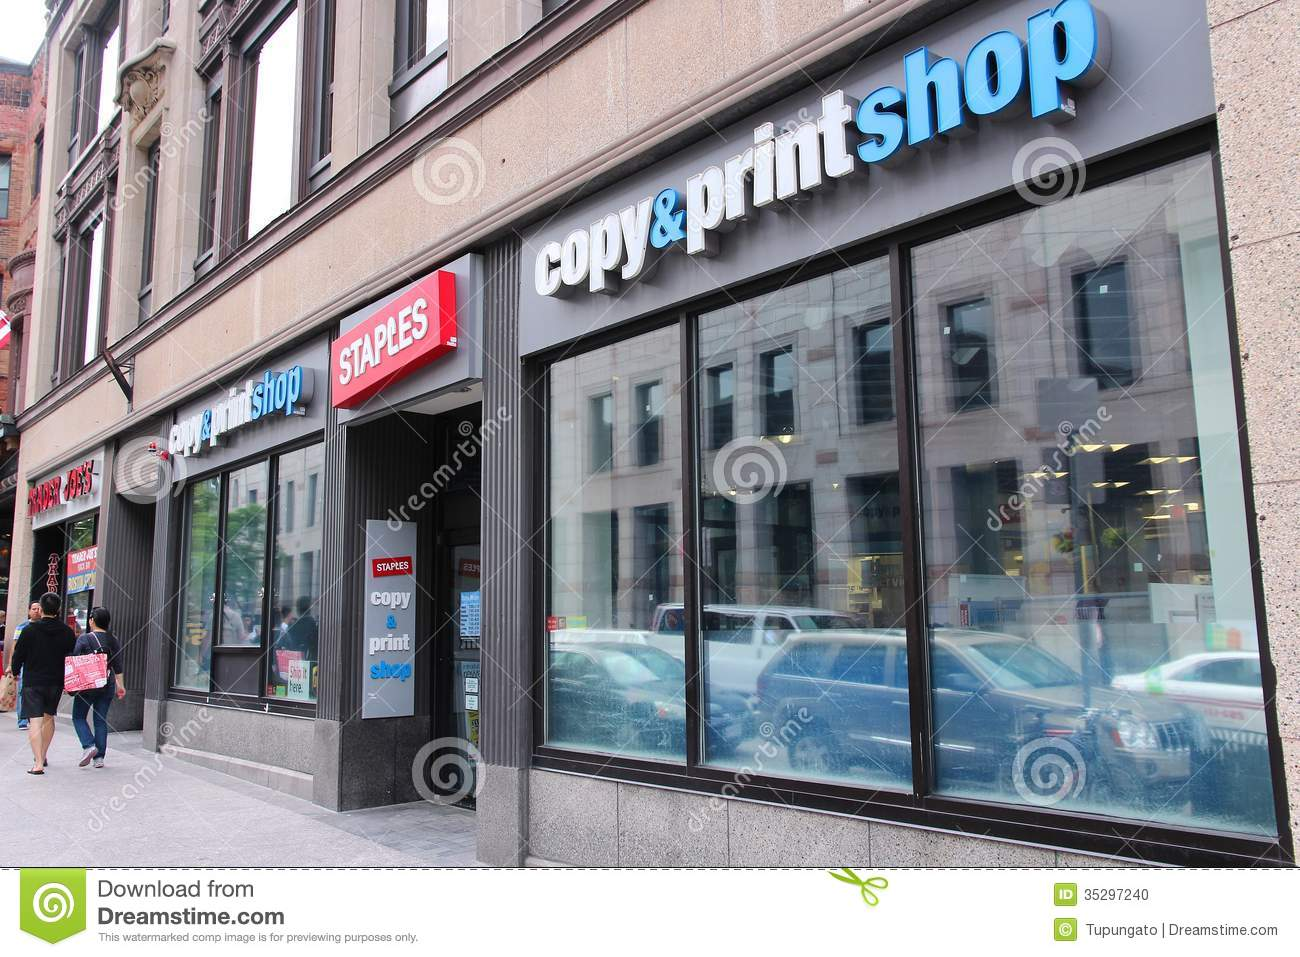 BOSTON - JUNE 8: People walk past Staples Copy and Print Shop on June ...: www.dreamstime.com/stock-photo-staples-copy-print-shop-boston-june...